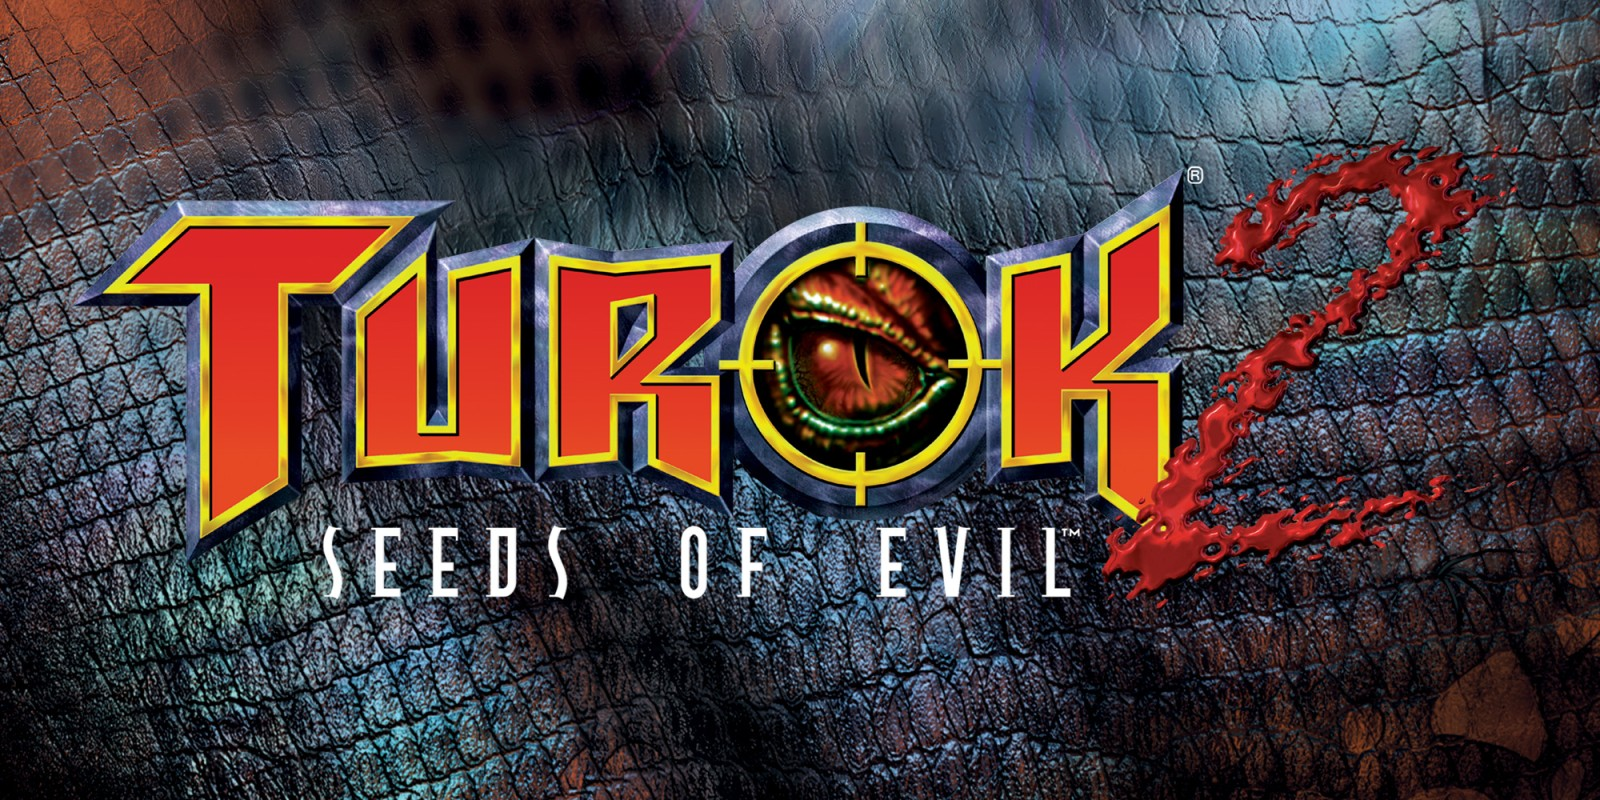 H2x1_NSwitchDS_Turok2SeedsOfEvil_image1600w